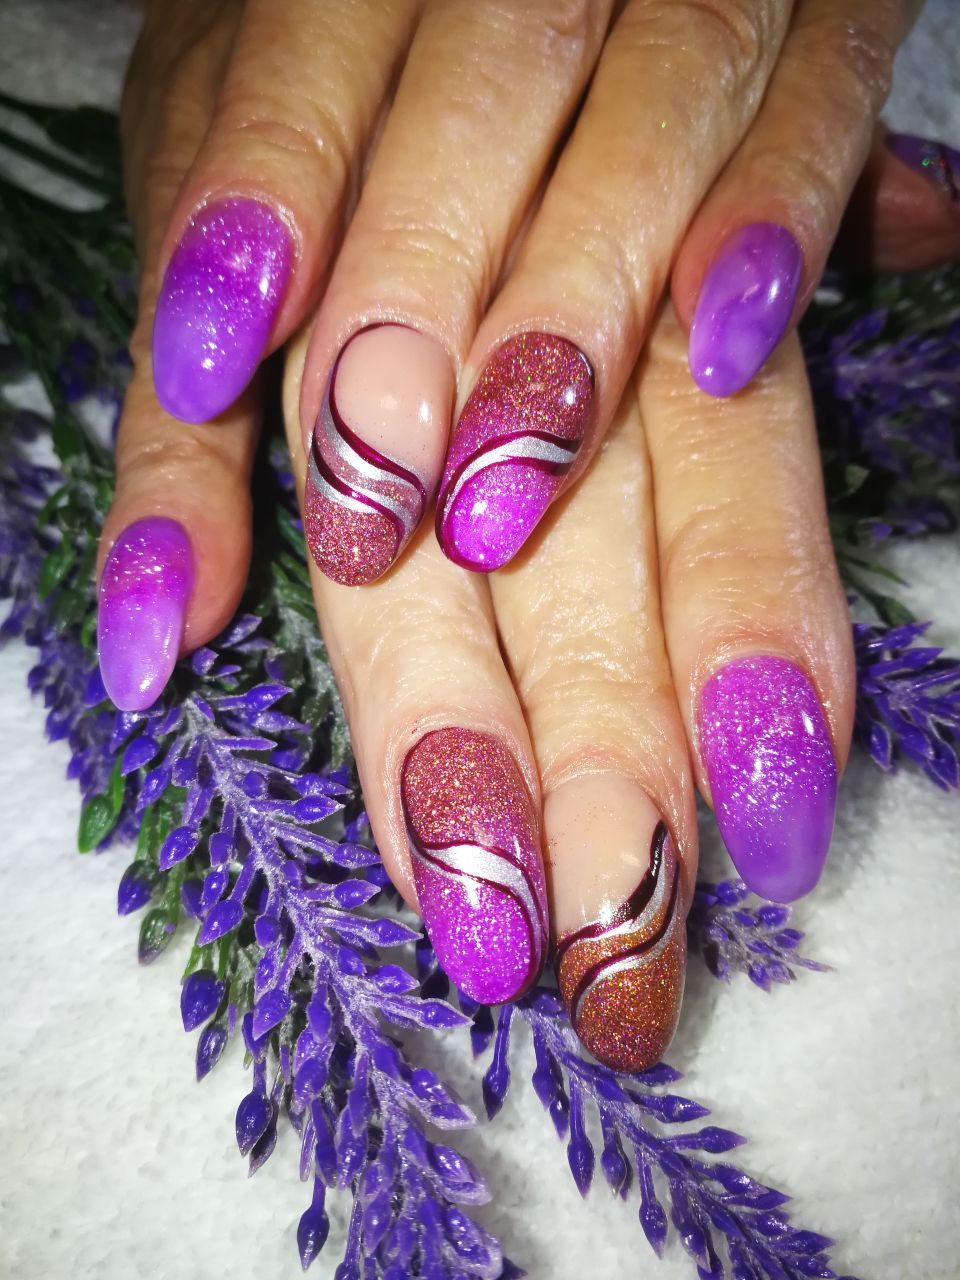 Pin On Spoil Your Nails